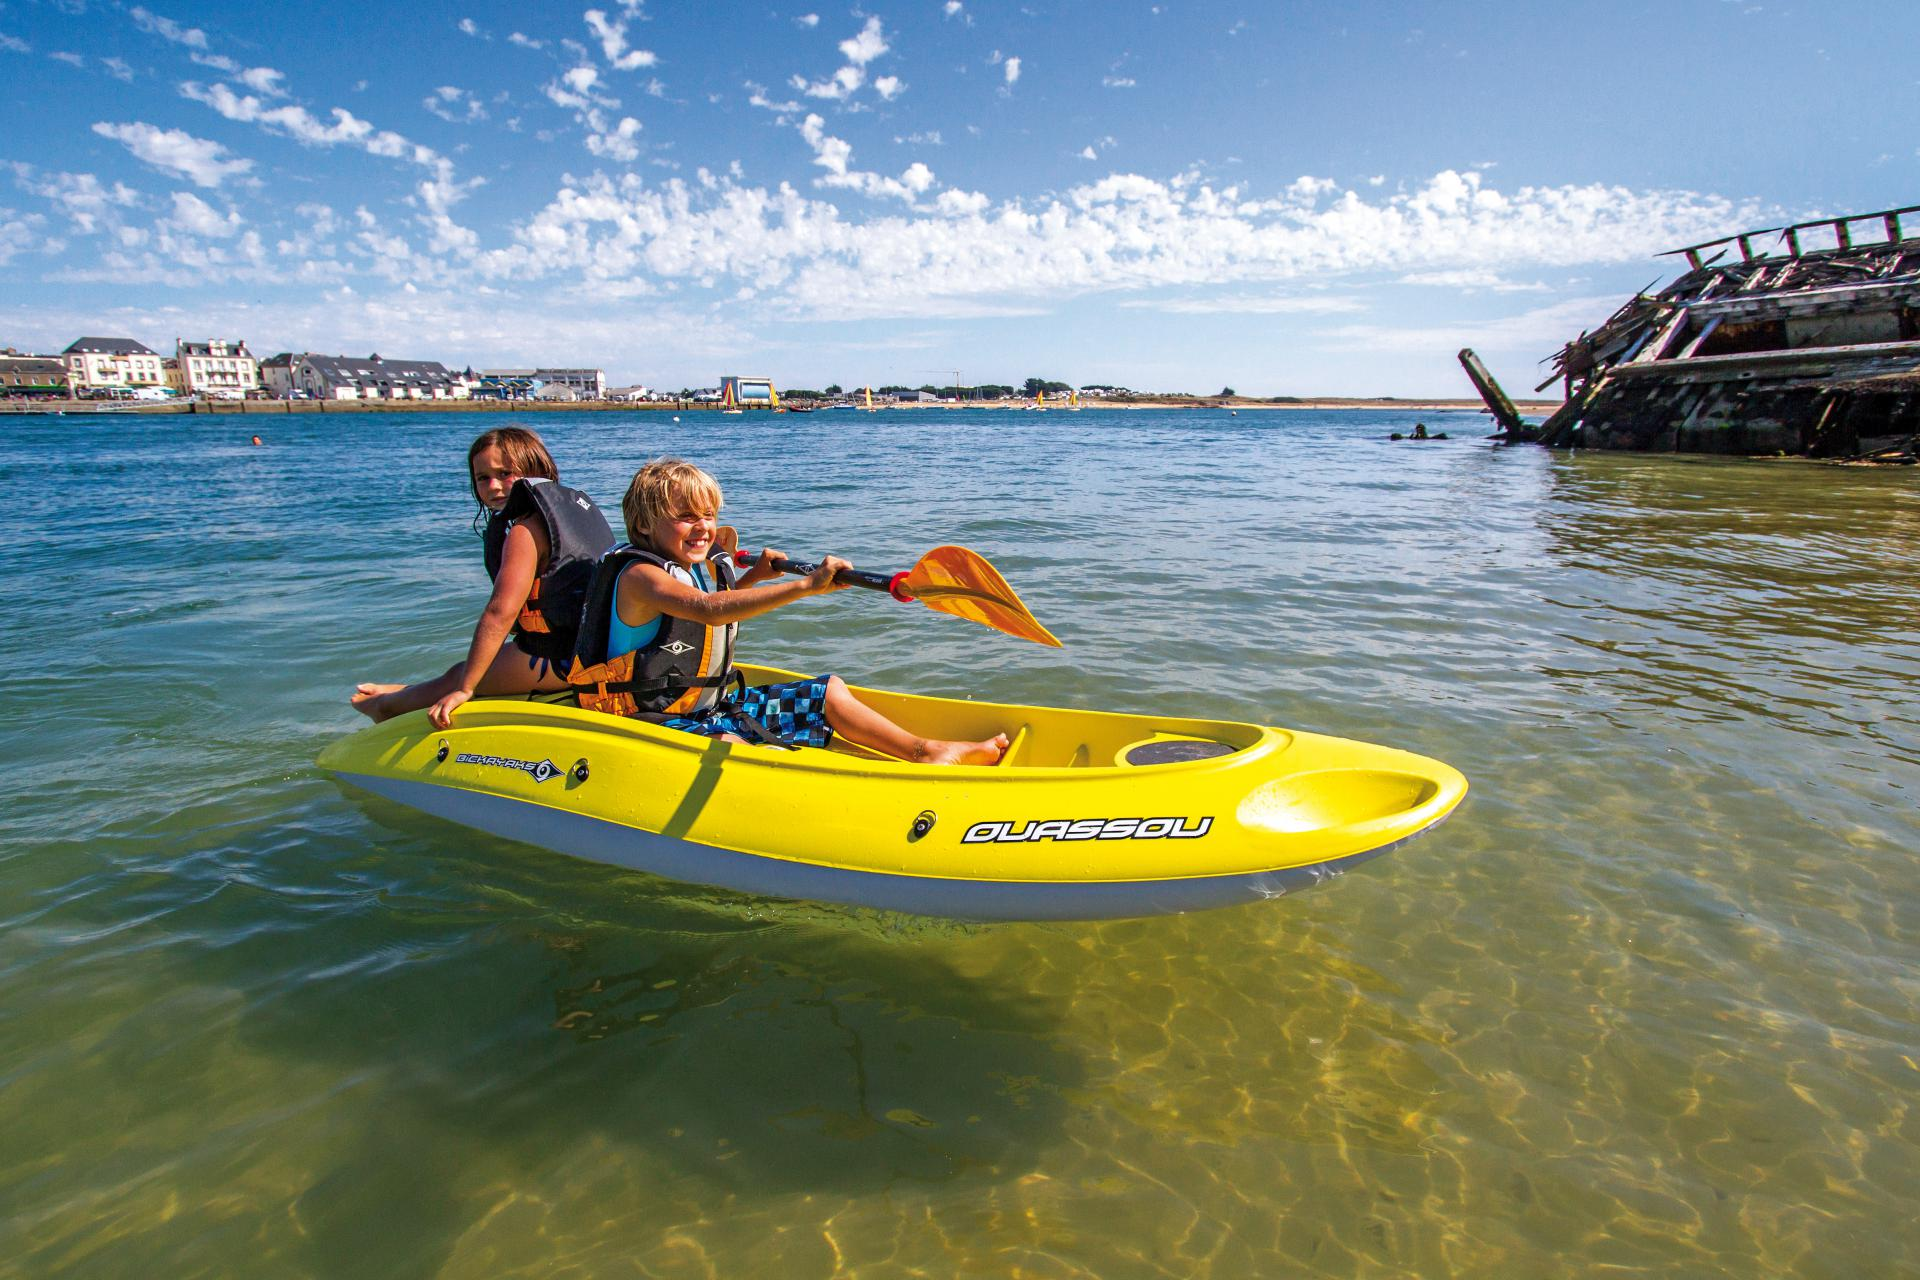 Gift voucher idea: Rental at Club Nautique du Rohu (Morbihan, Brittany)